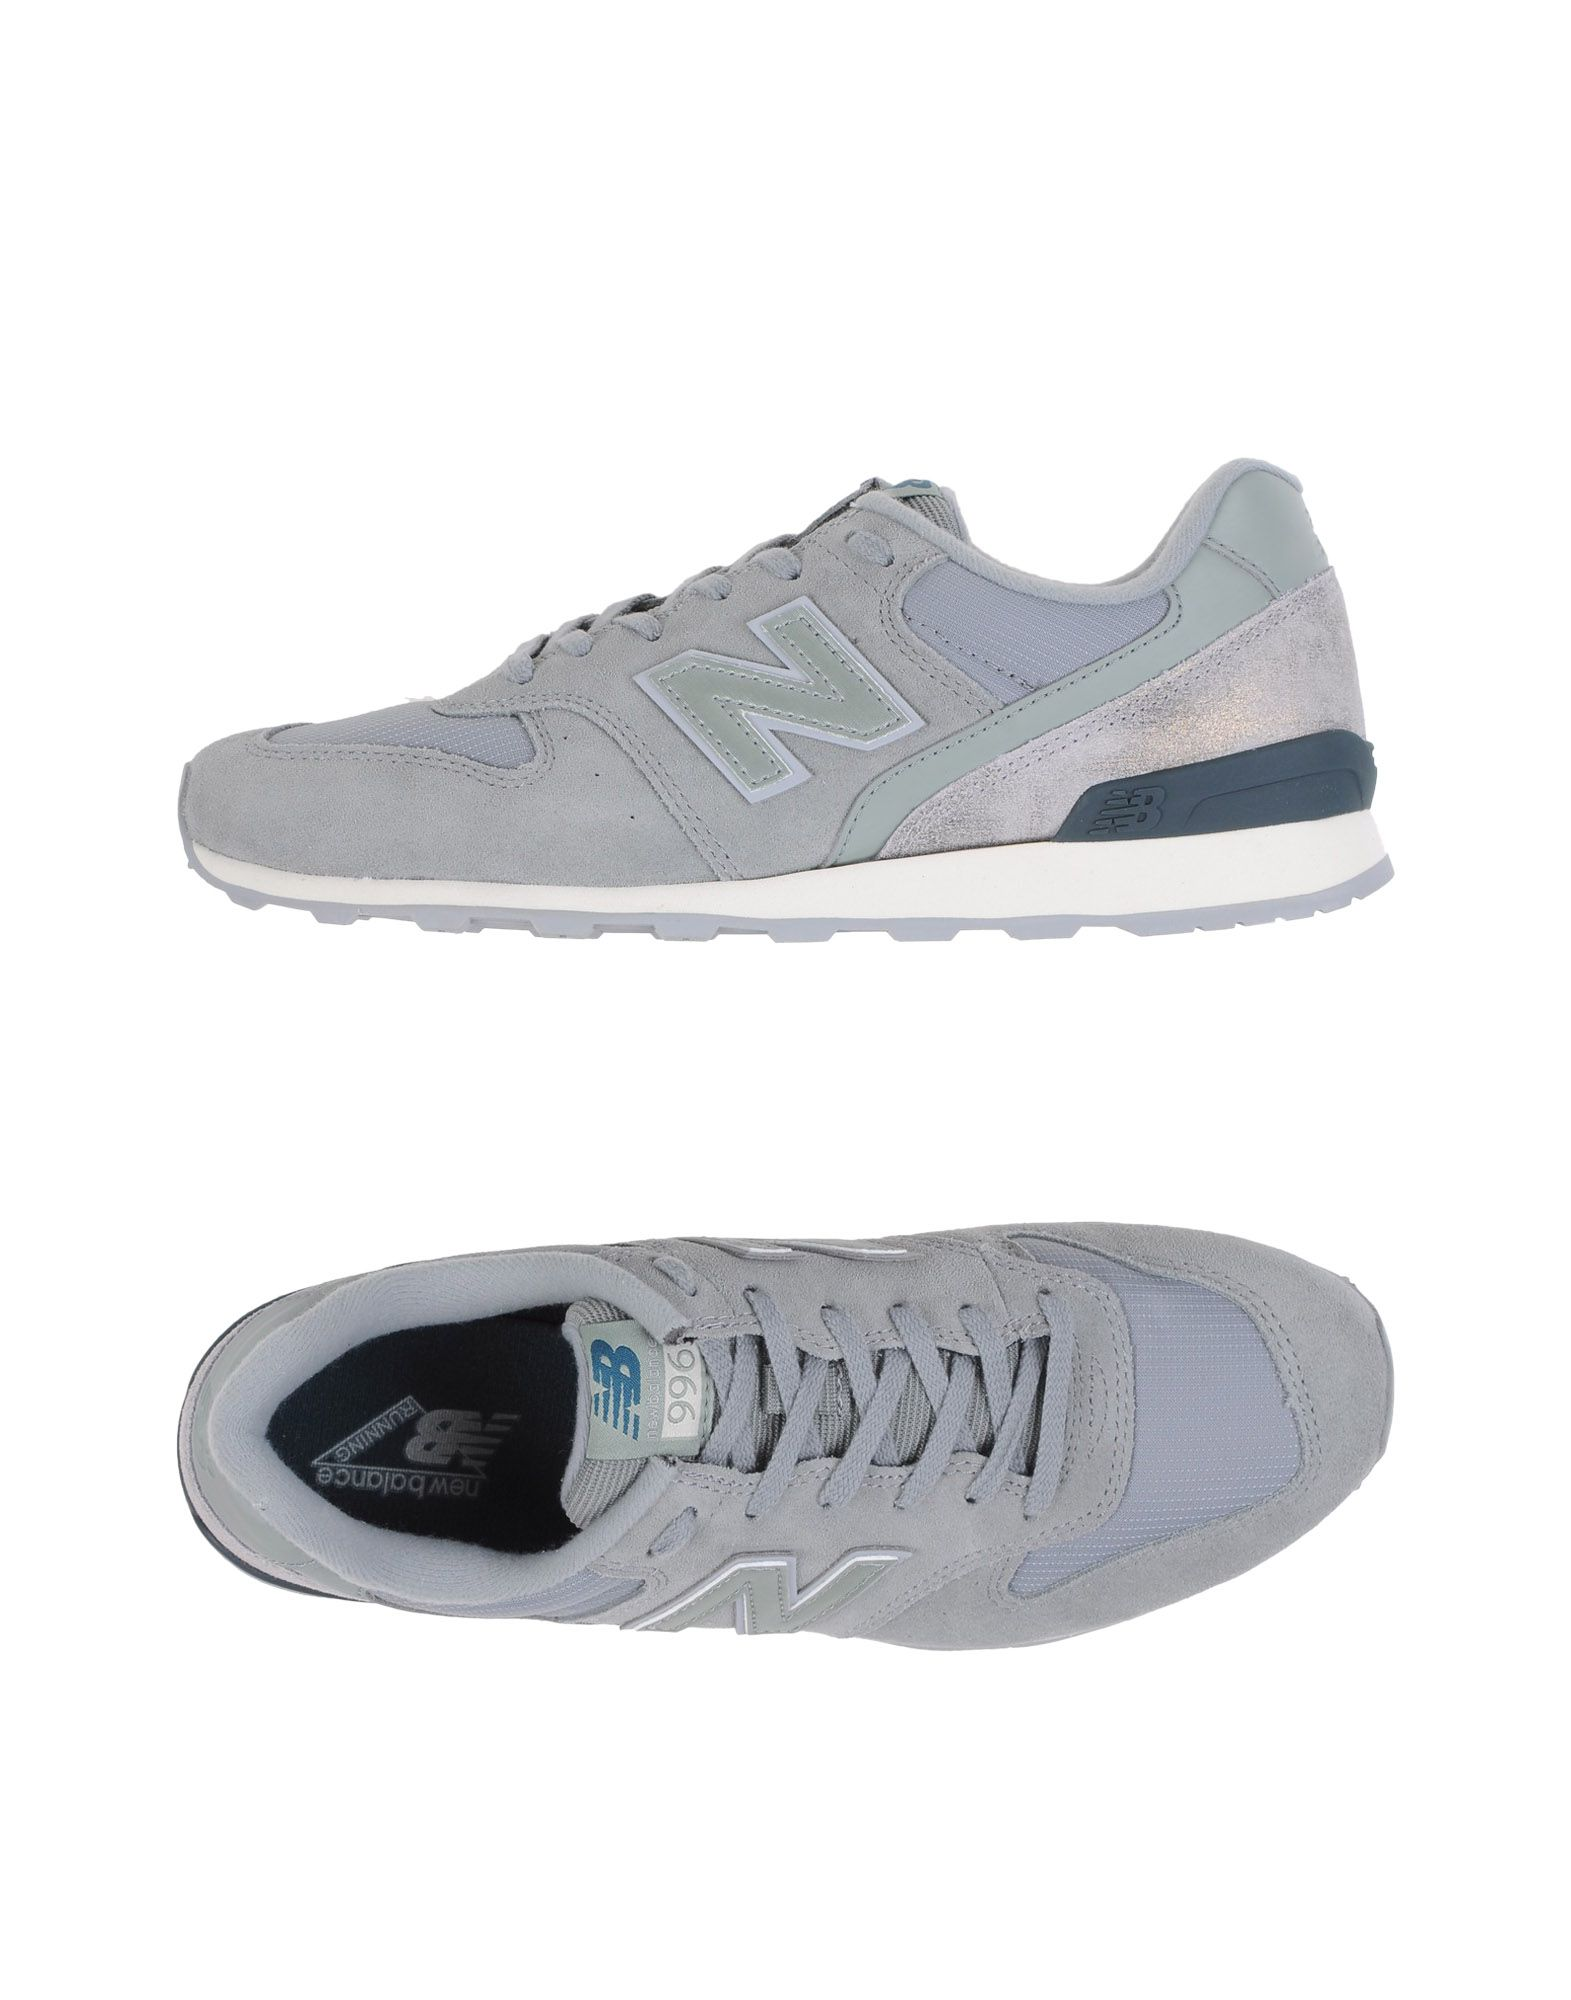 Sneakers Donna New Balance 996 Sophisticated - Donna Sneakers - 11089174IM c05c69